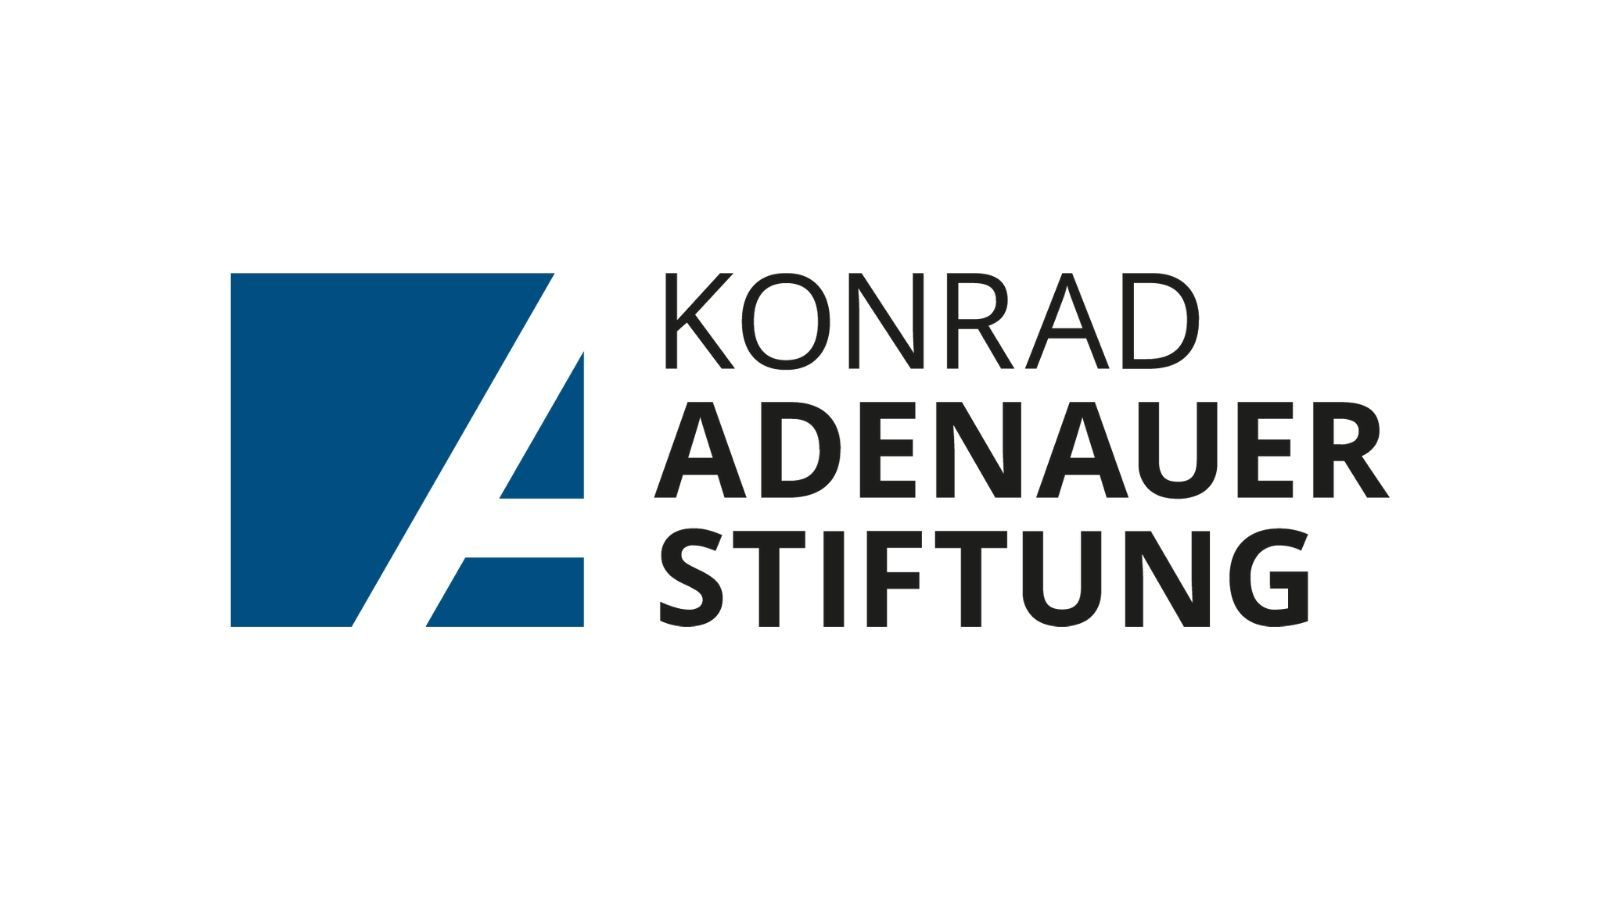 Konrad Adenauer Foundation International Affairs Internship 2021